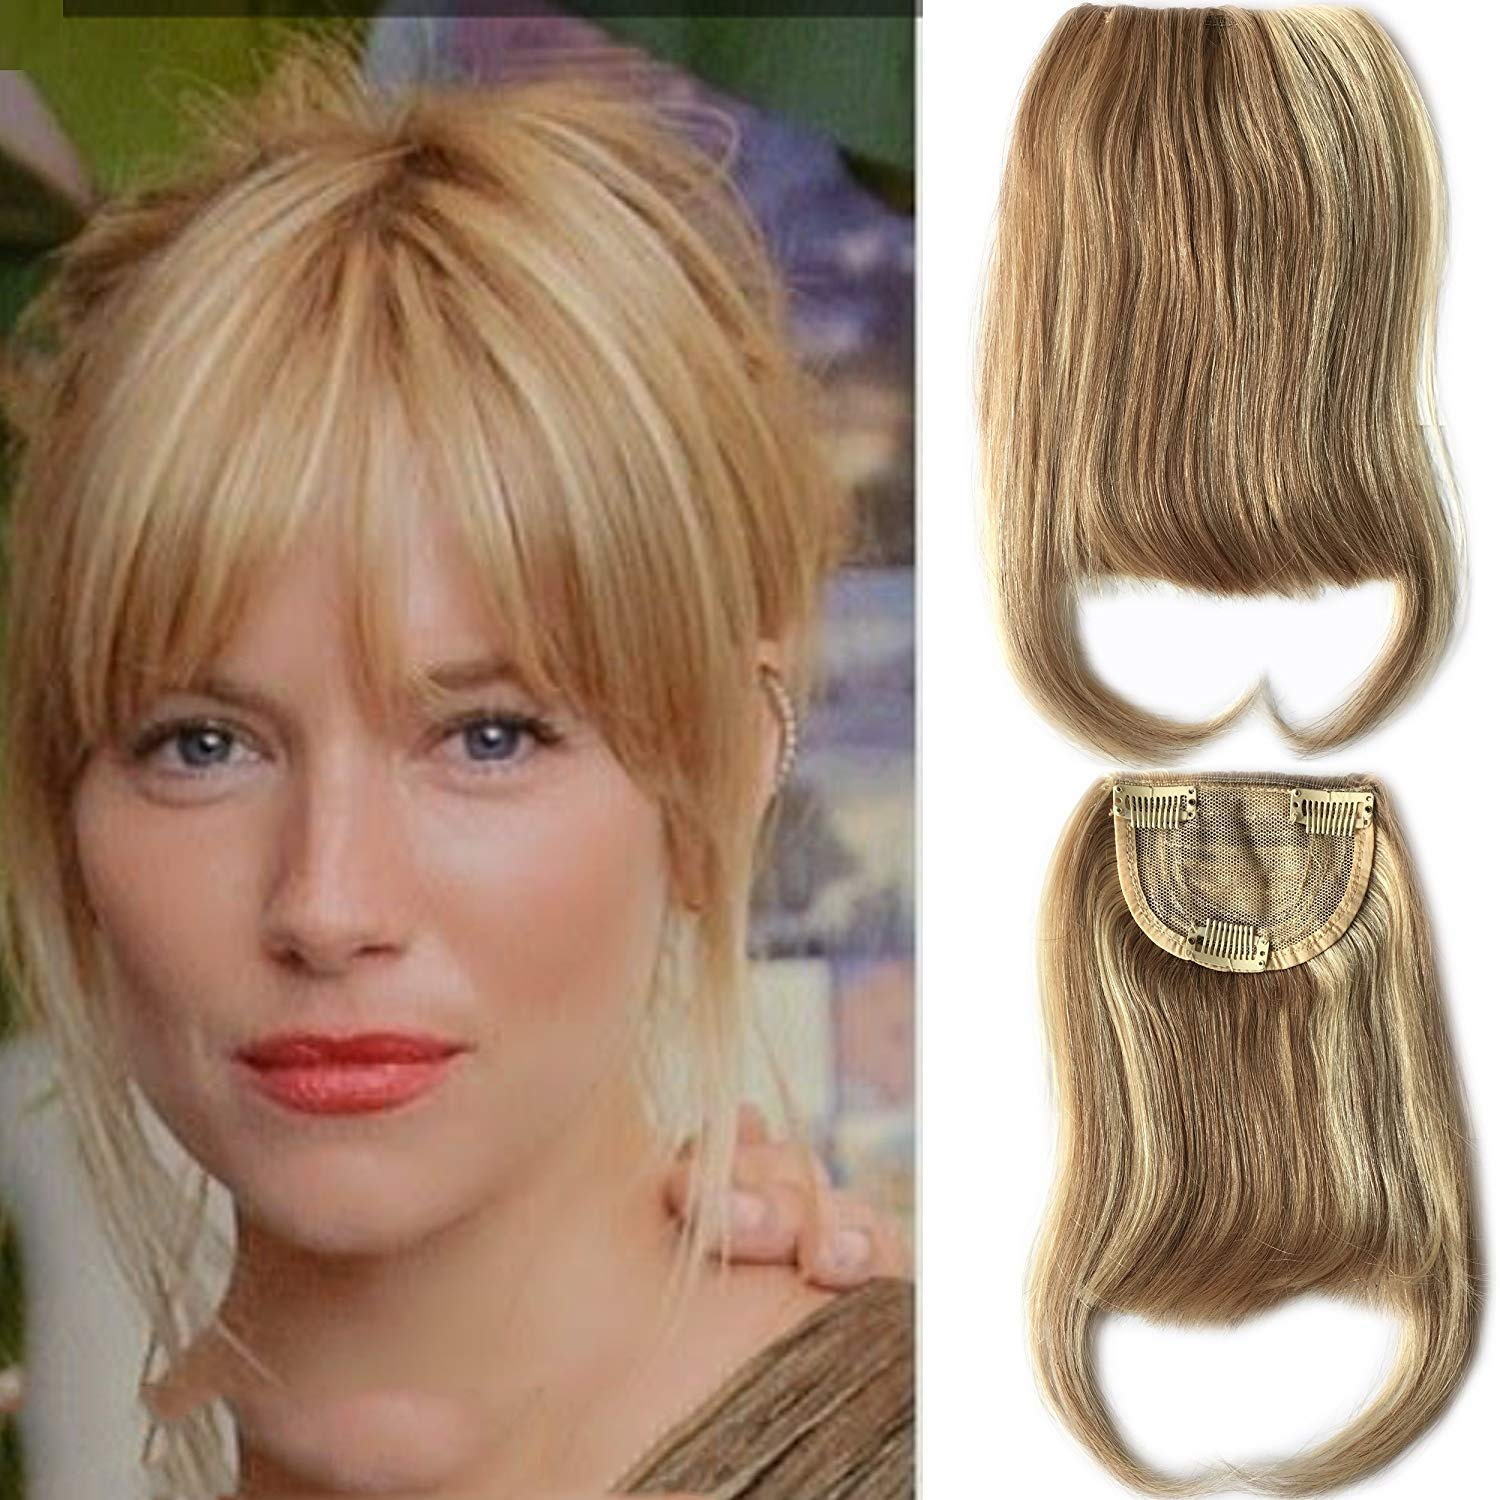 27P613 Blonde Mixed Brown Color Brazilian Human Hair Clip-in Hair Bangs Full Fringe Short Straight Hair Extension For Women 6-8